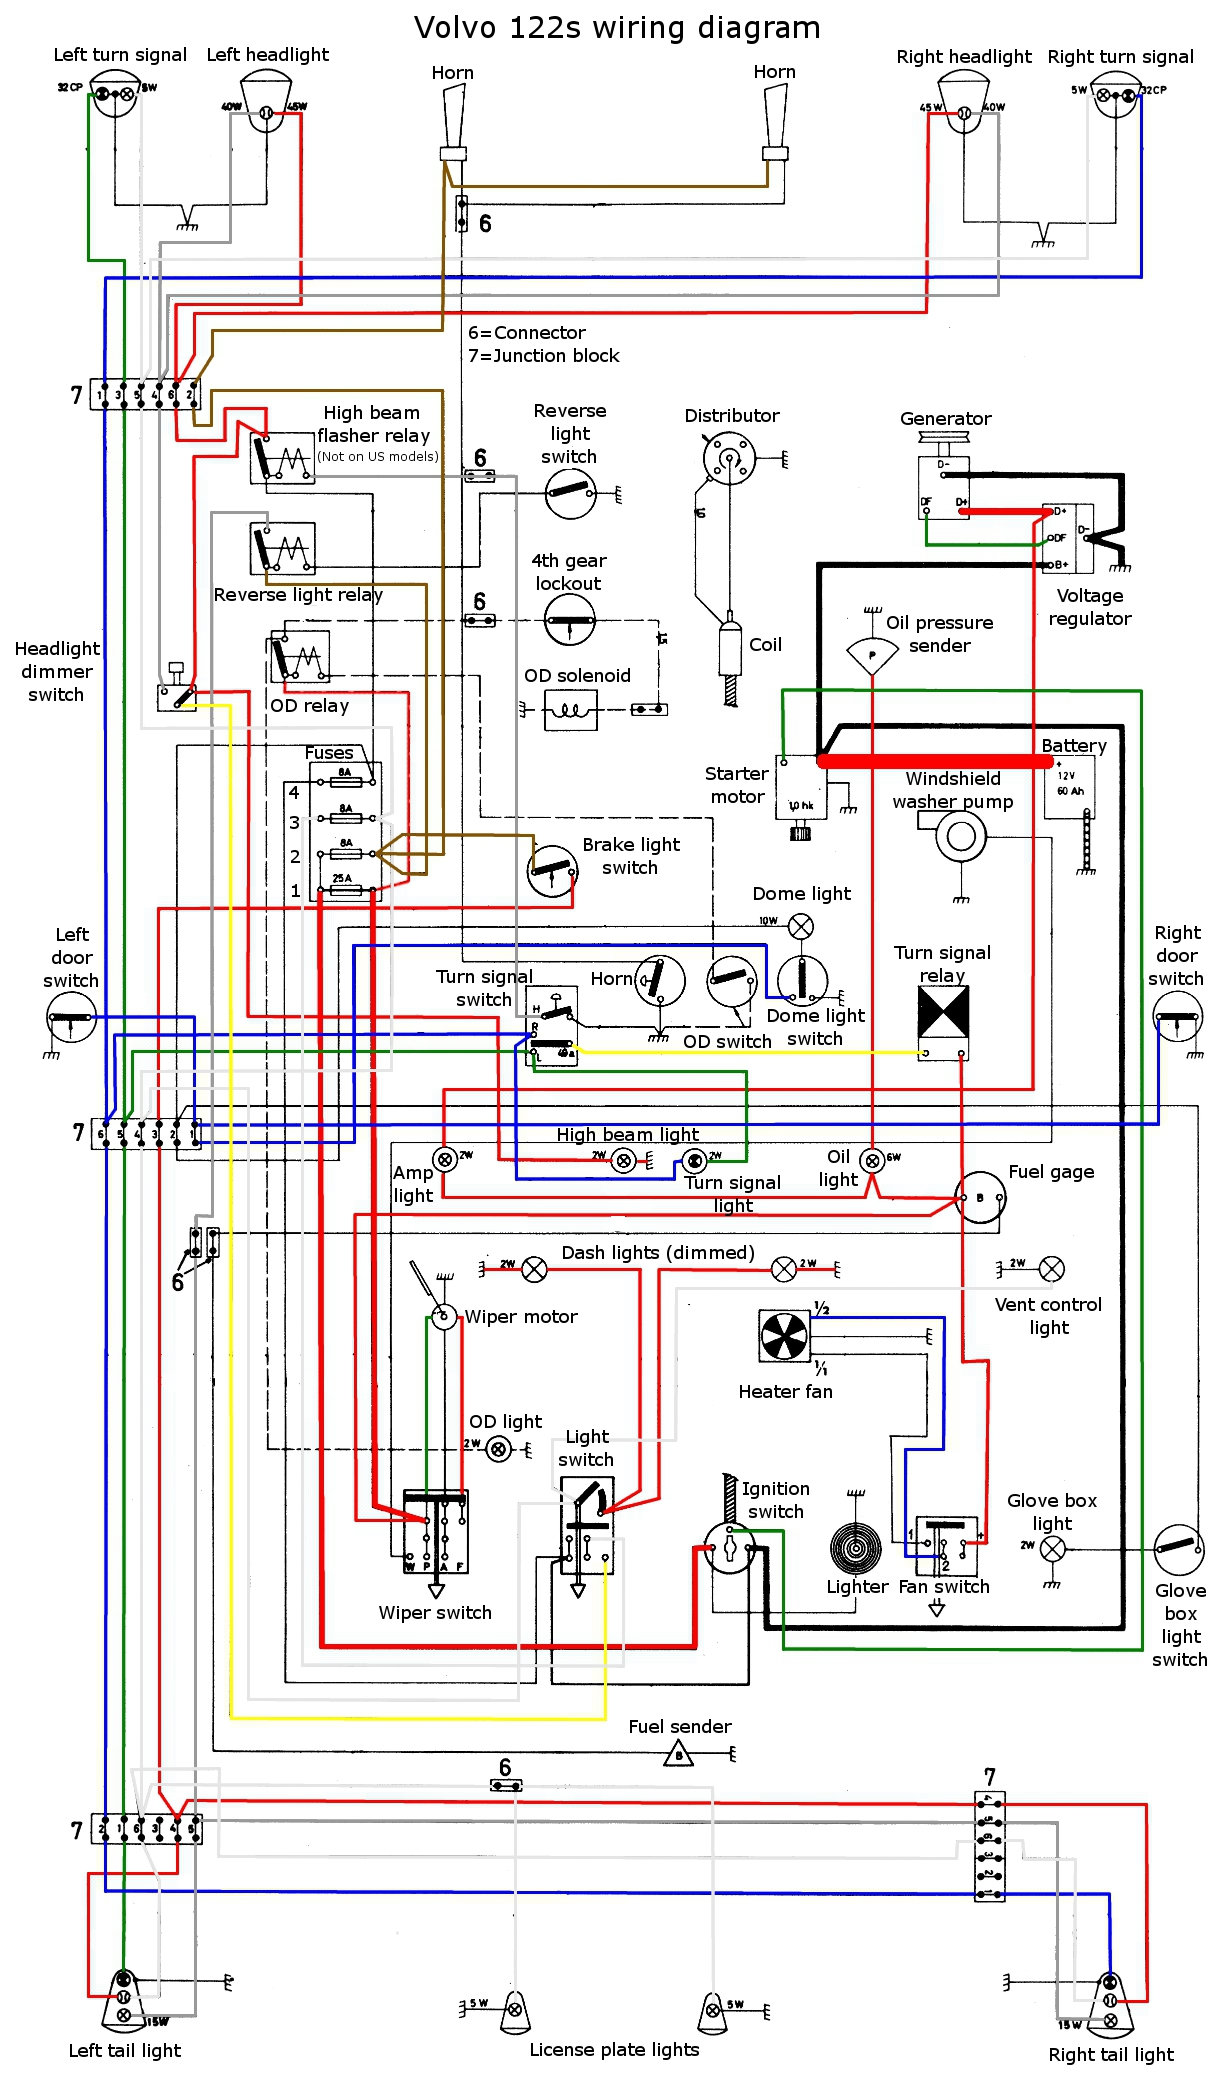 122 wiring diagram color?resize\\\\\\\\\\\\\\\\\\\\\\\\\\\\\\\\\\\\\\\\\\\\\\\\\\\\\\\\\\\\\\\\\\\\\\\\\\\\\\\\\\\\\\\\\\\\\\\\\\\\\\\\\\\\\\\\\\\\\\\\\\\\\\\\\\\\\\\\\\\\\\\\\\\\\\\\\\\\\\\\\\\\\\\\\\\\\\\\\\\\\\\\\\\\\\\\\\\\\\\\\\\\\\\\\\\\\\\\\\\\\\\\\\\\\\\\\\\\\\\\\\\\\\\\\\\\\\\\\\\\\\\\\\\\\\\\\\\\\\\\\\\\\\\\\\\\\\\\\\\\\\\\\\\\\\\\\\\\\\\\\\\\\\\\\\\\\\\\\\\\\\\\\\\\\\\\\\\\\\\\\\\\\\\\\\\\\\\\\\\\\\\\\\\\\\\\\\\\\\\\\\\\\\\\\\\\\\\\\\\\\\\\\\\\\\\\\\\\\\\\\\\\\\\\\\\\\\\\\\\\\\\\\\\\\\\\\\\\\\\\\\\\\\\\\\\\\\\\\\\\\\\\\\\\\\\=665%2C1124 excellent truck lite wiring diagram gallery electrical system